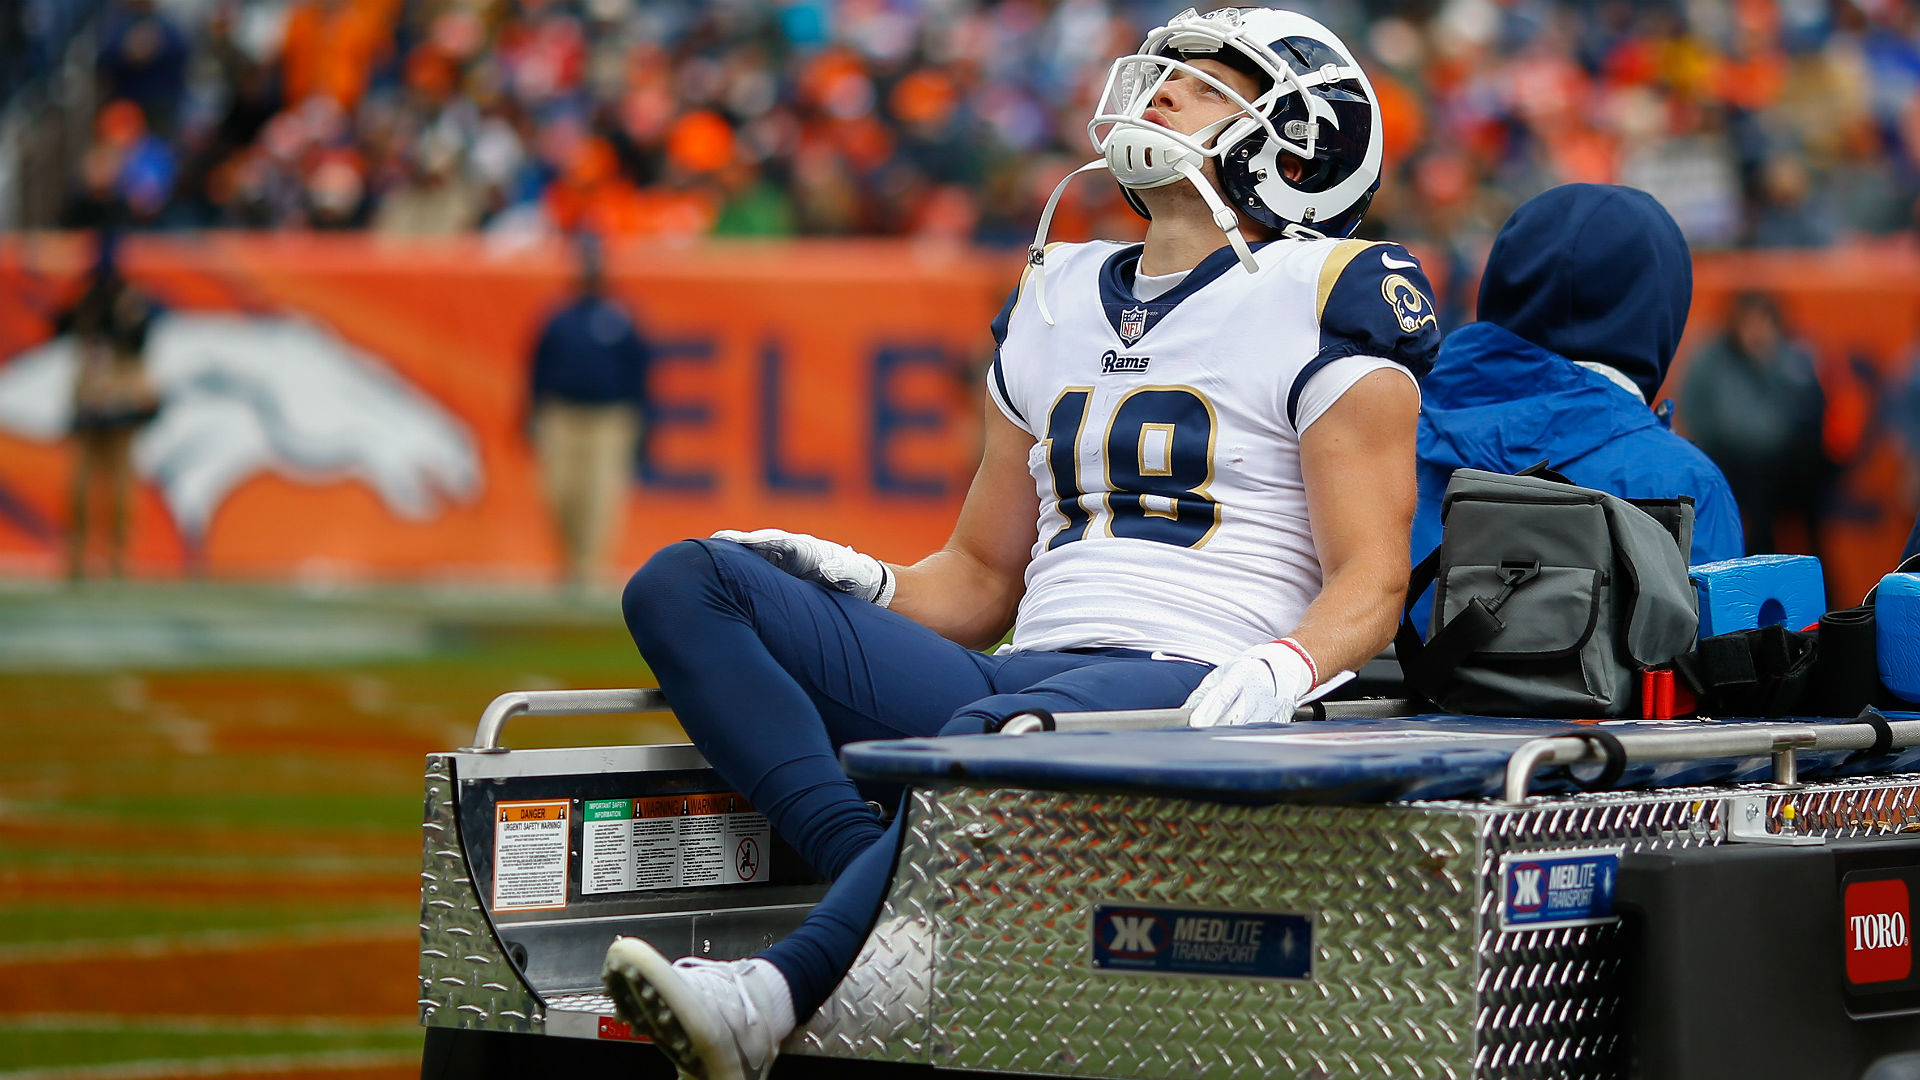 Cooper Kupp injury update: Rams rule out wide receiver for 49ers game Sunday